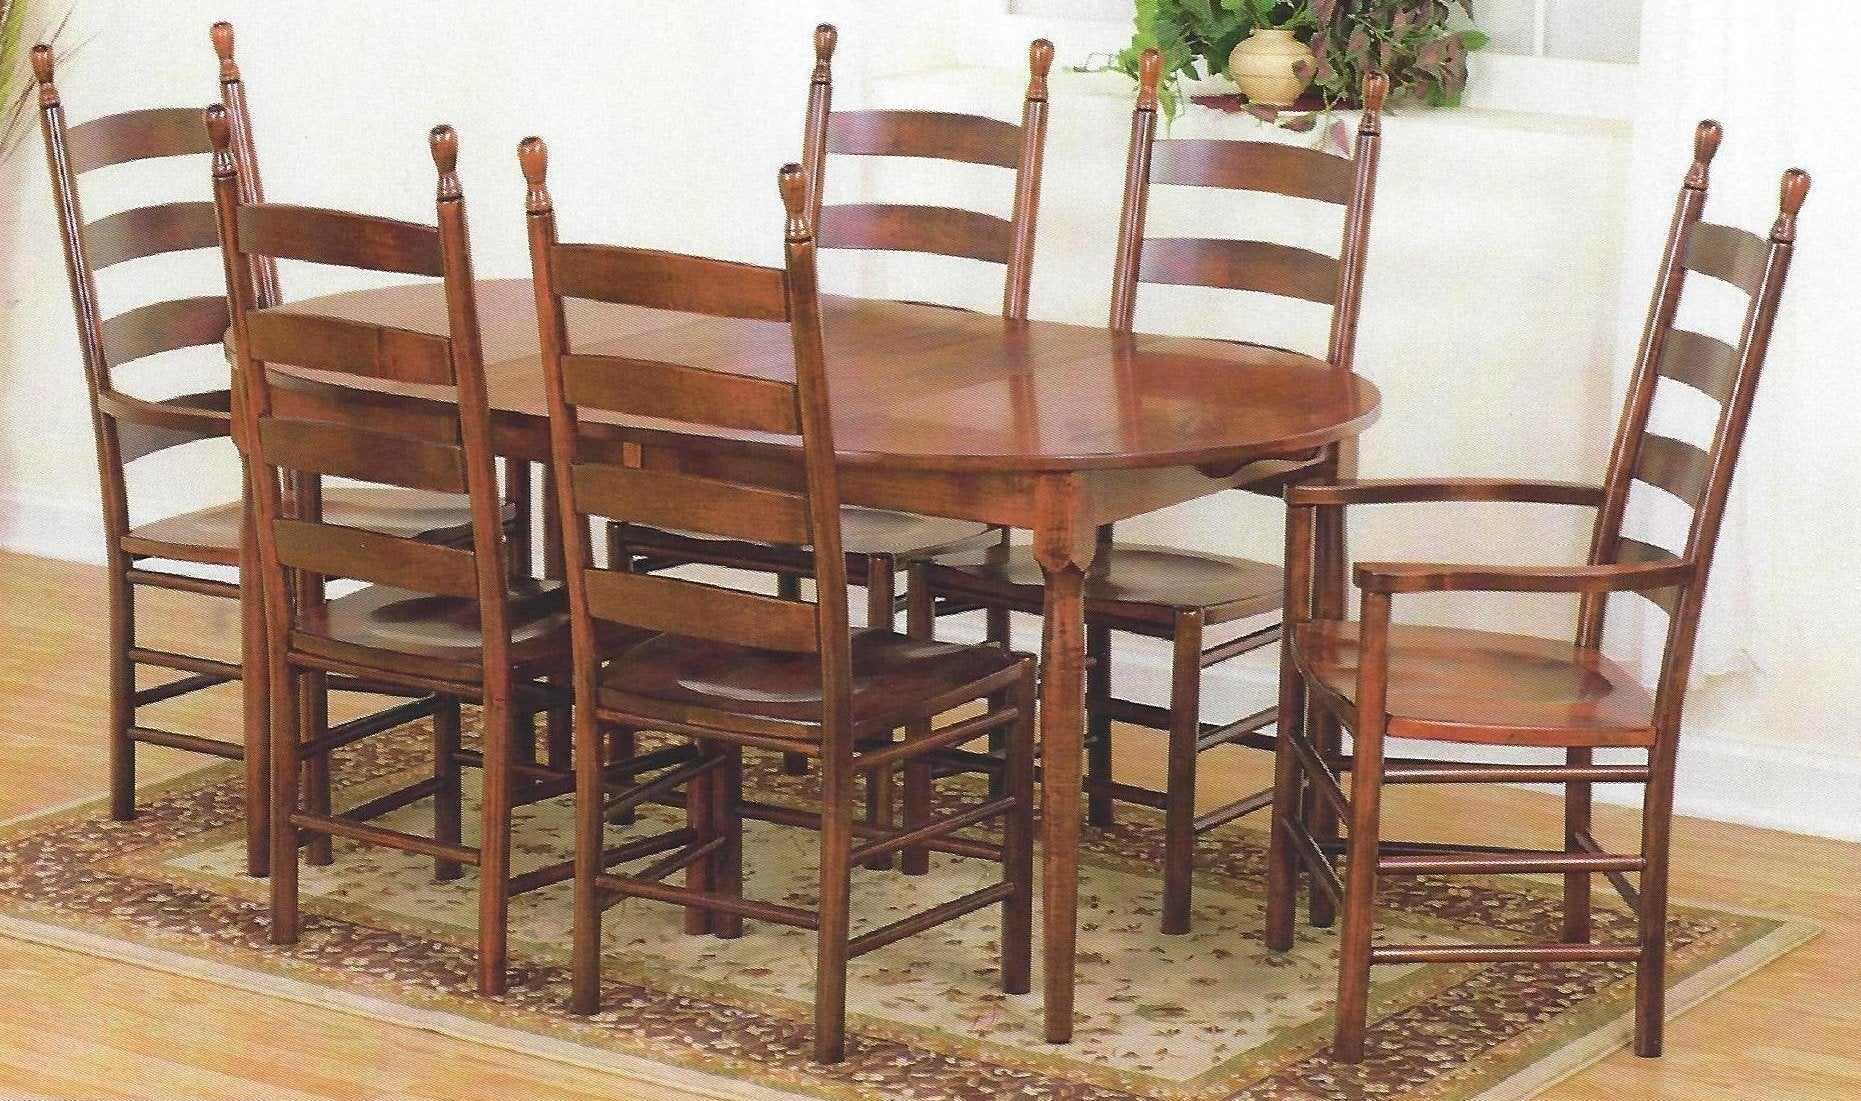 42 Round Extension Dining Table With Four Maple Chairs